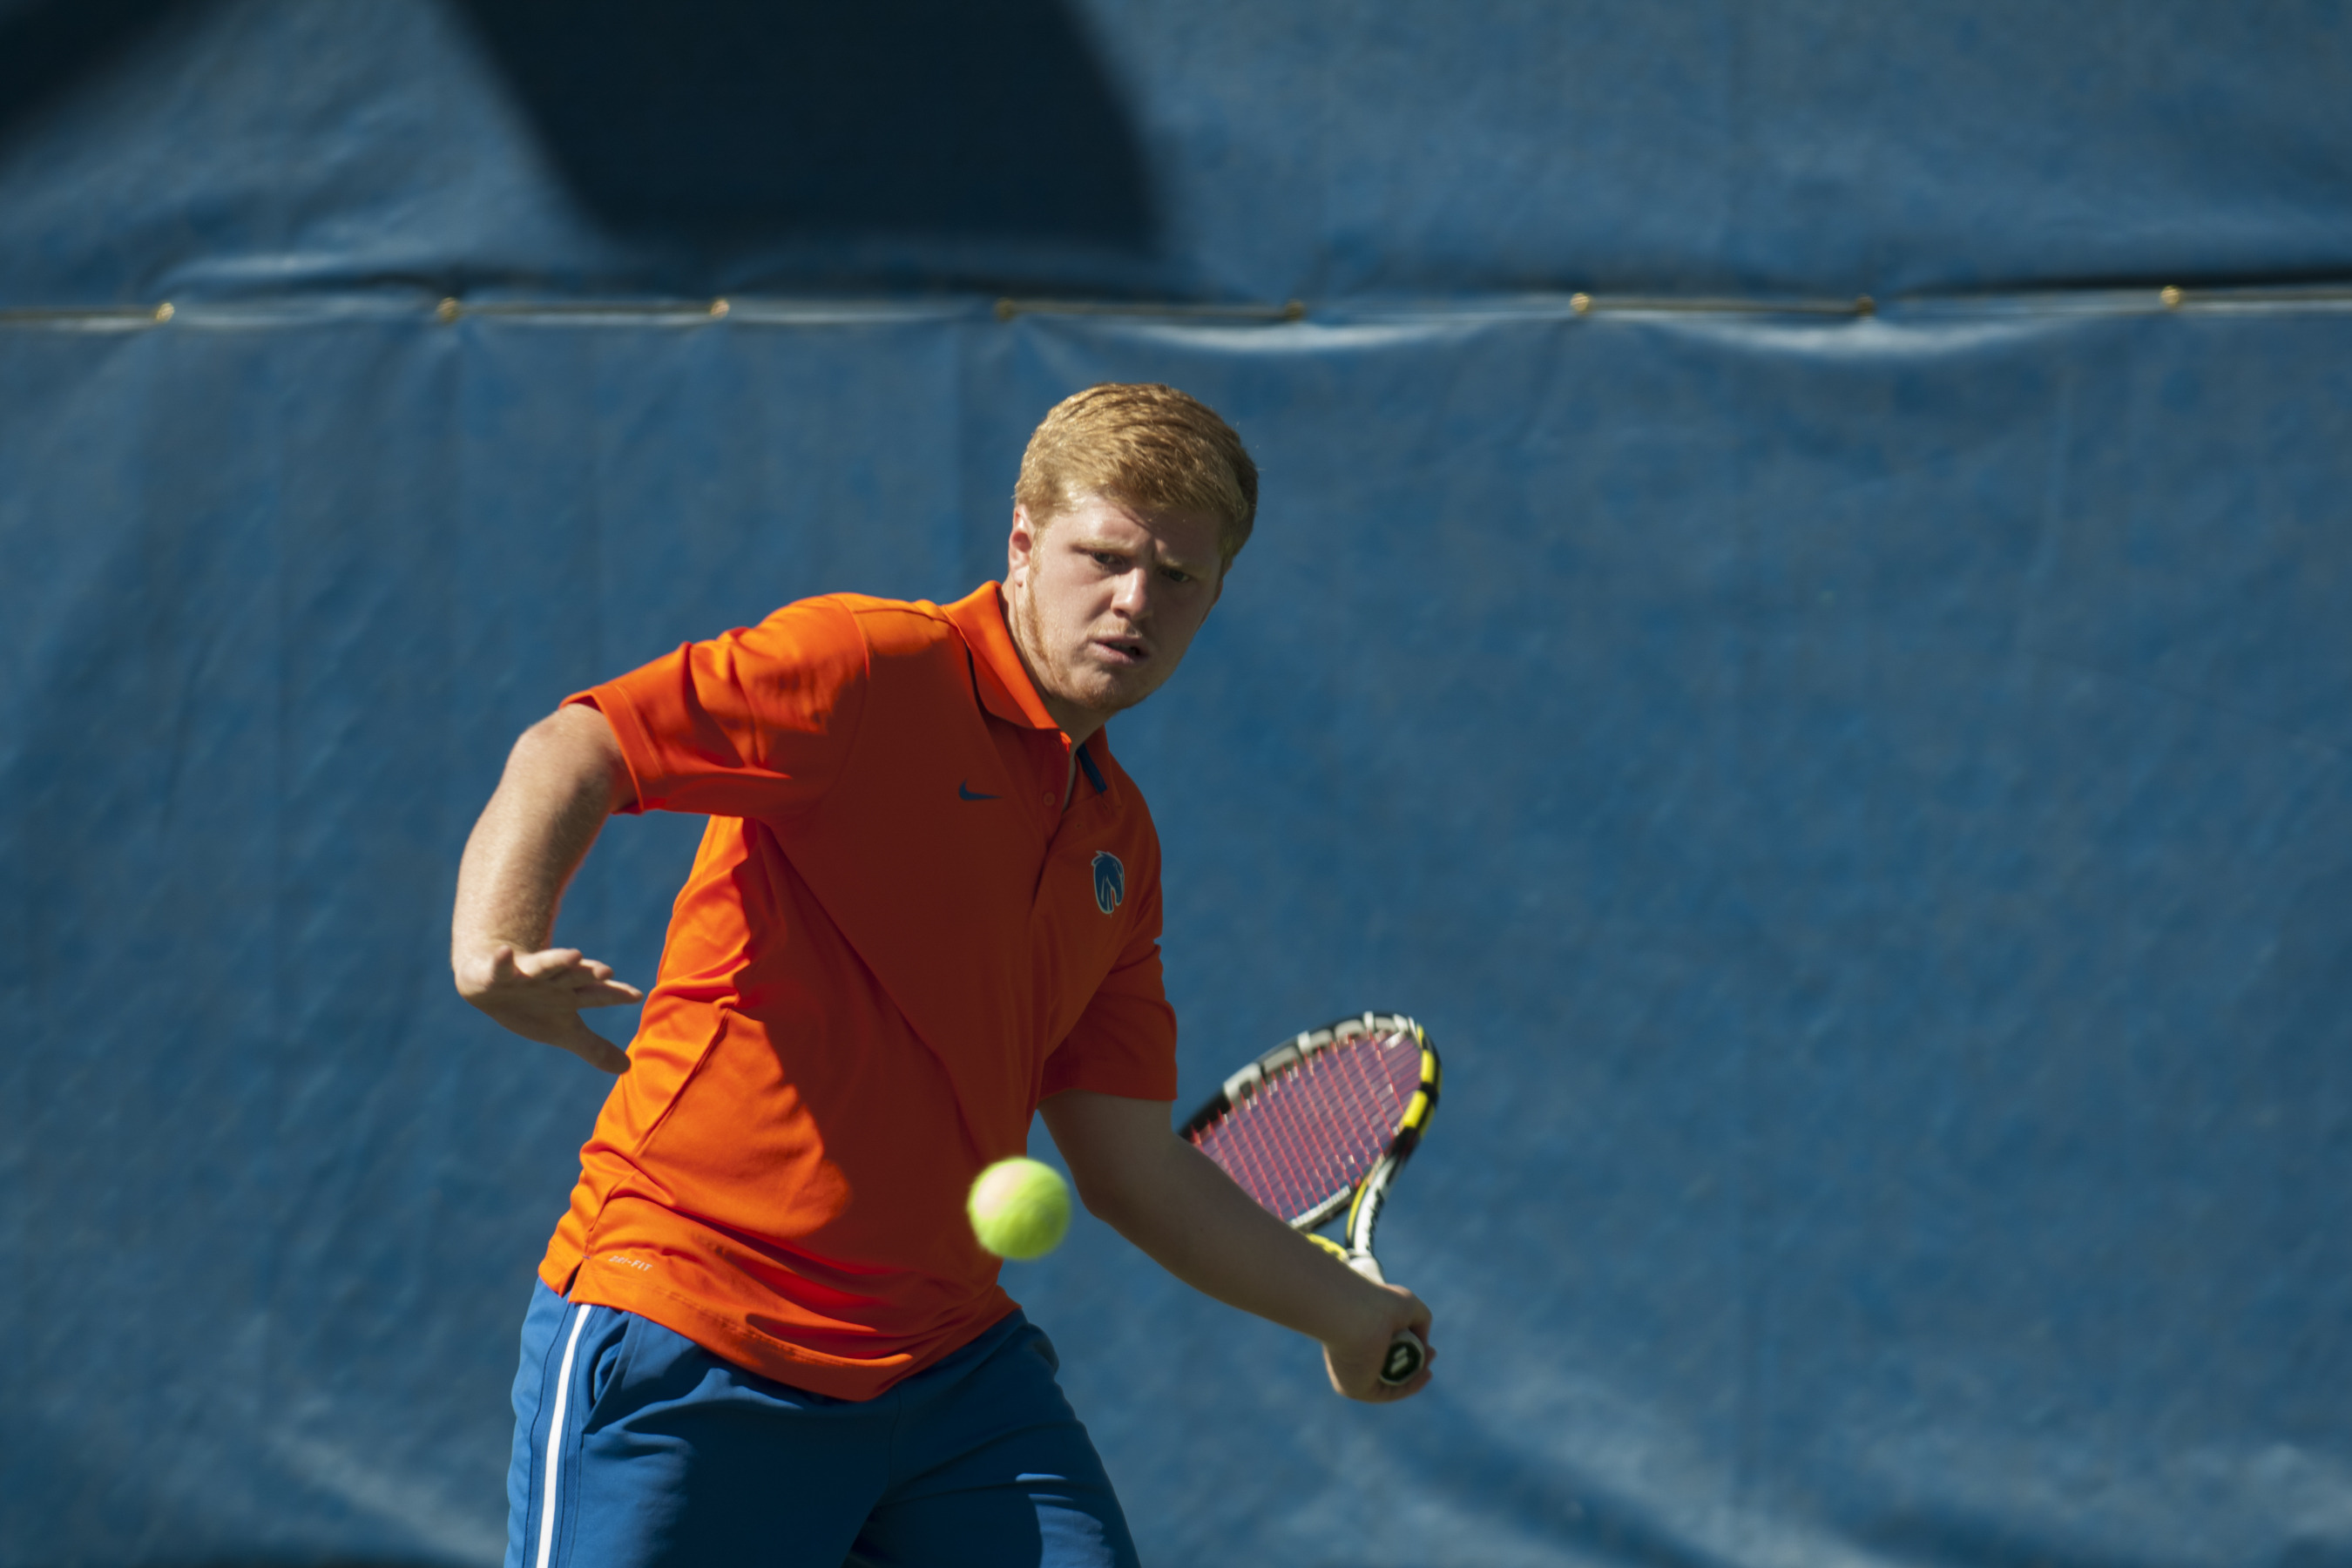 Lewis Roskilly clinched win over BYU.